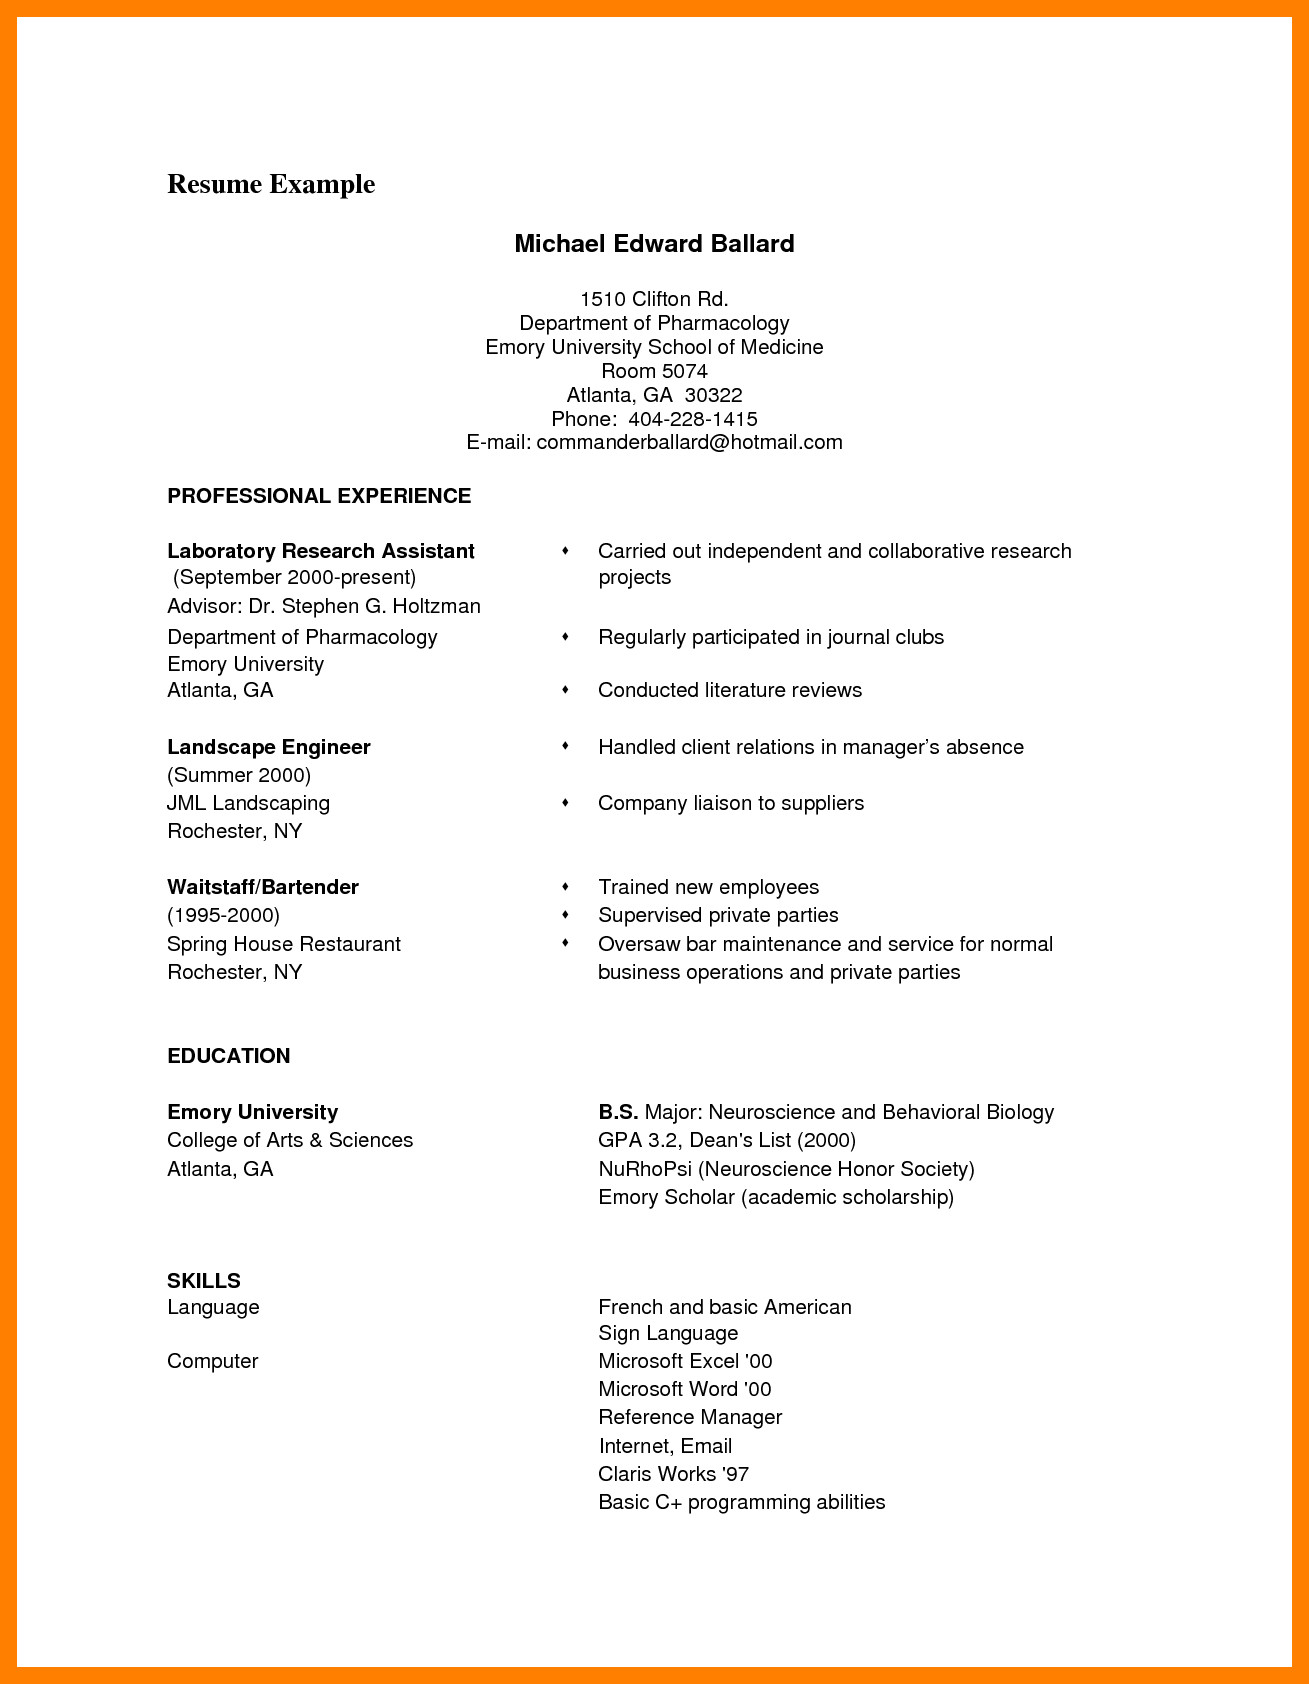 Free Resume Template Pdf 9 Cv format Samples Pdf